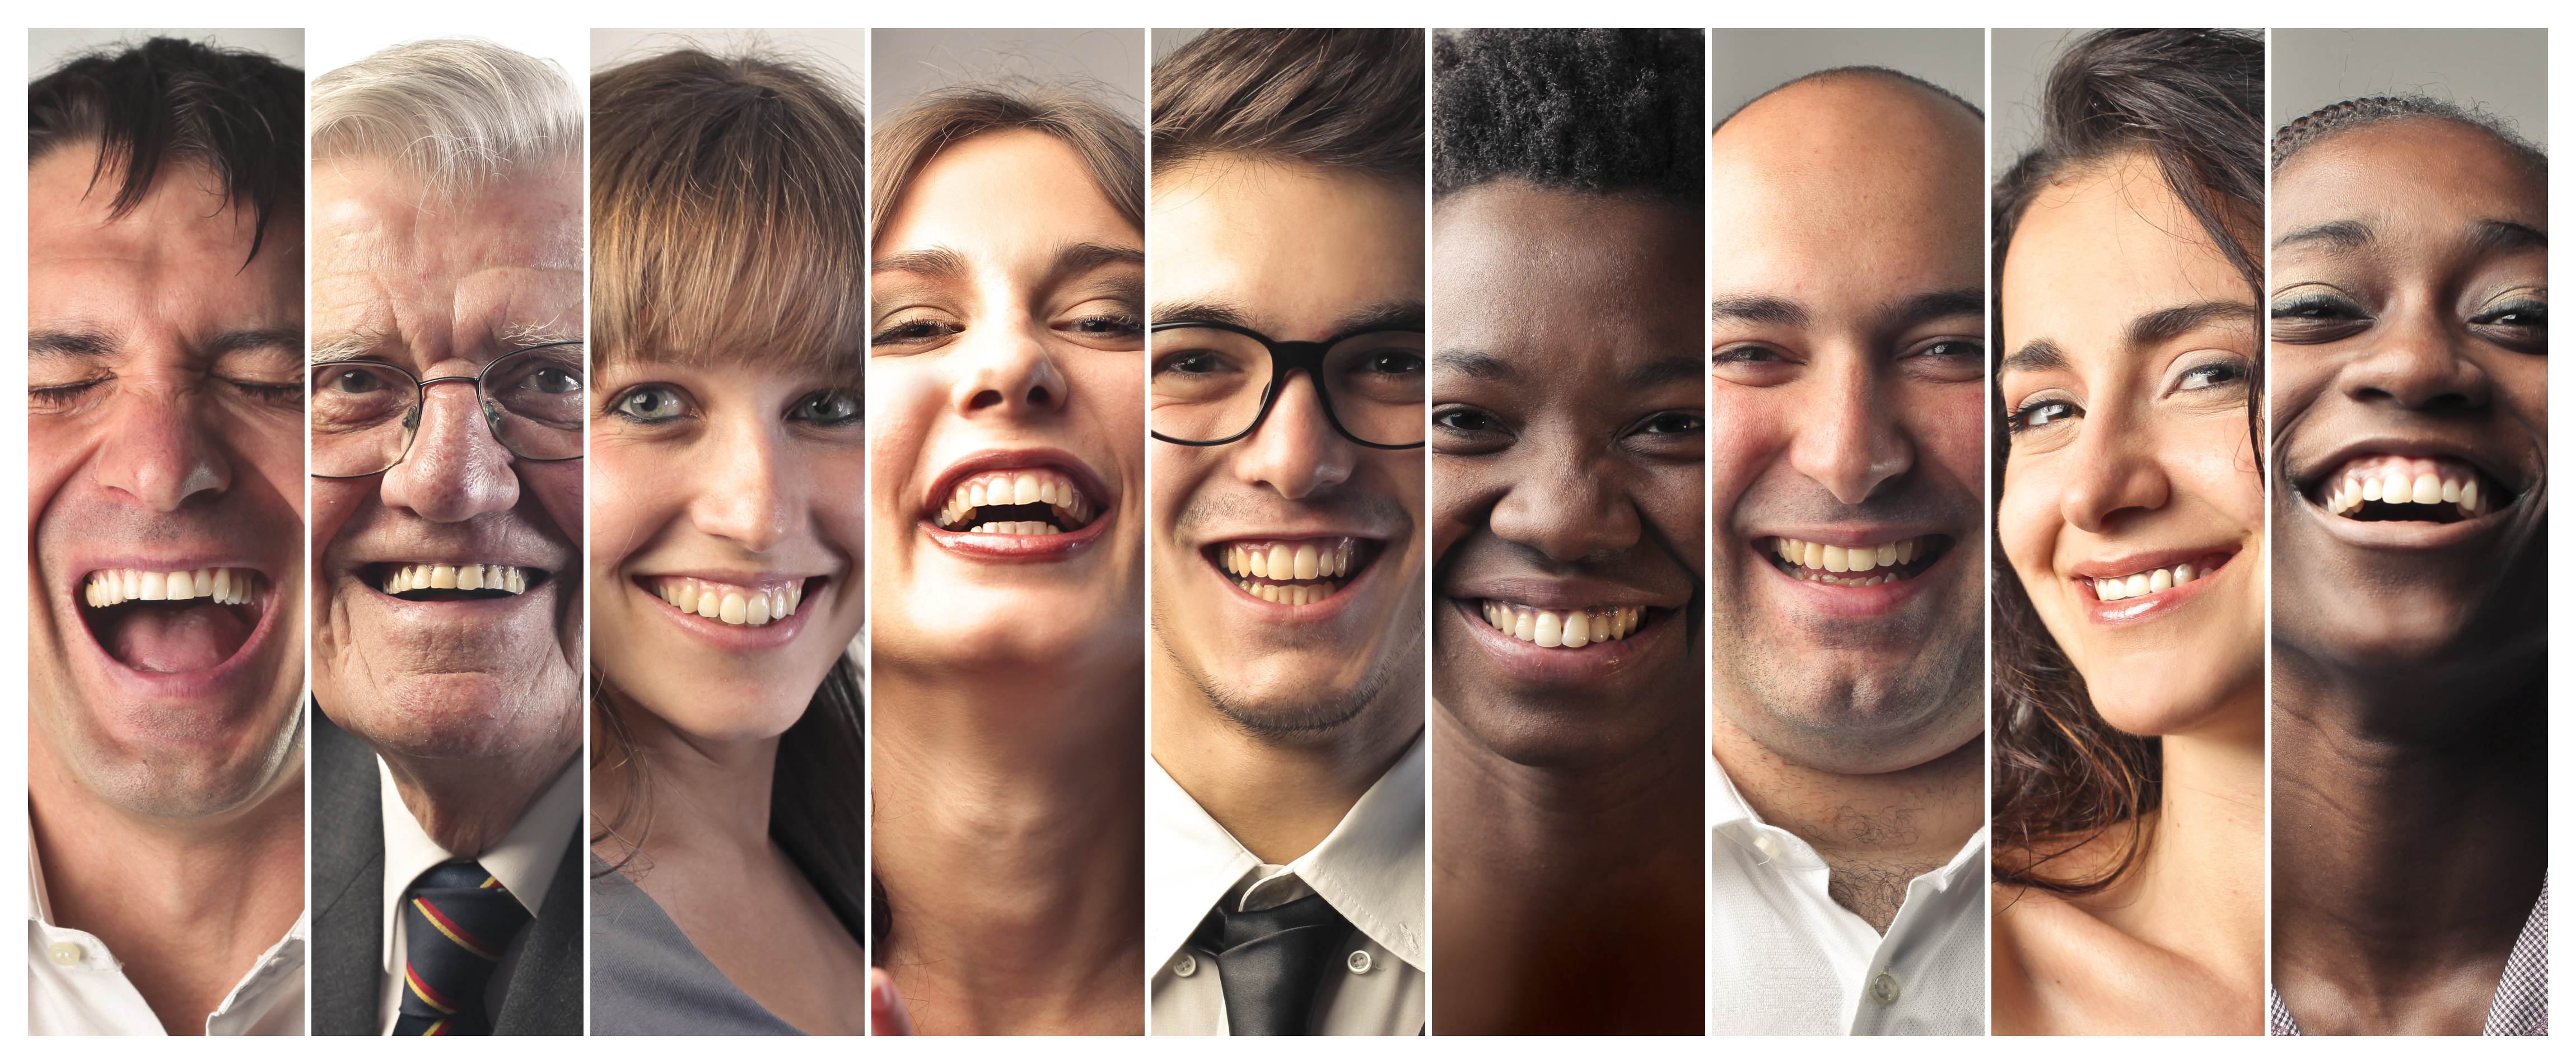 Many men and women of diverse ethnicities and ages smiling and laughing